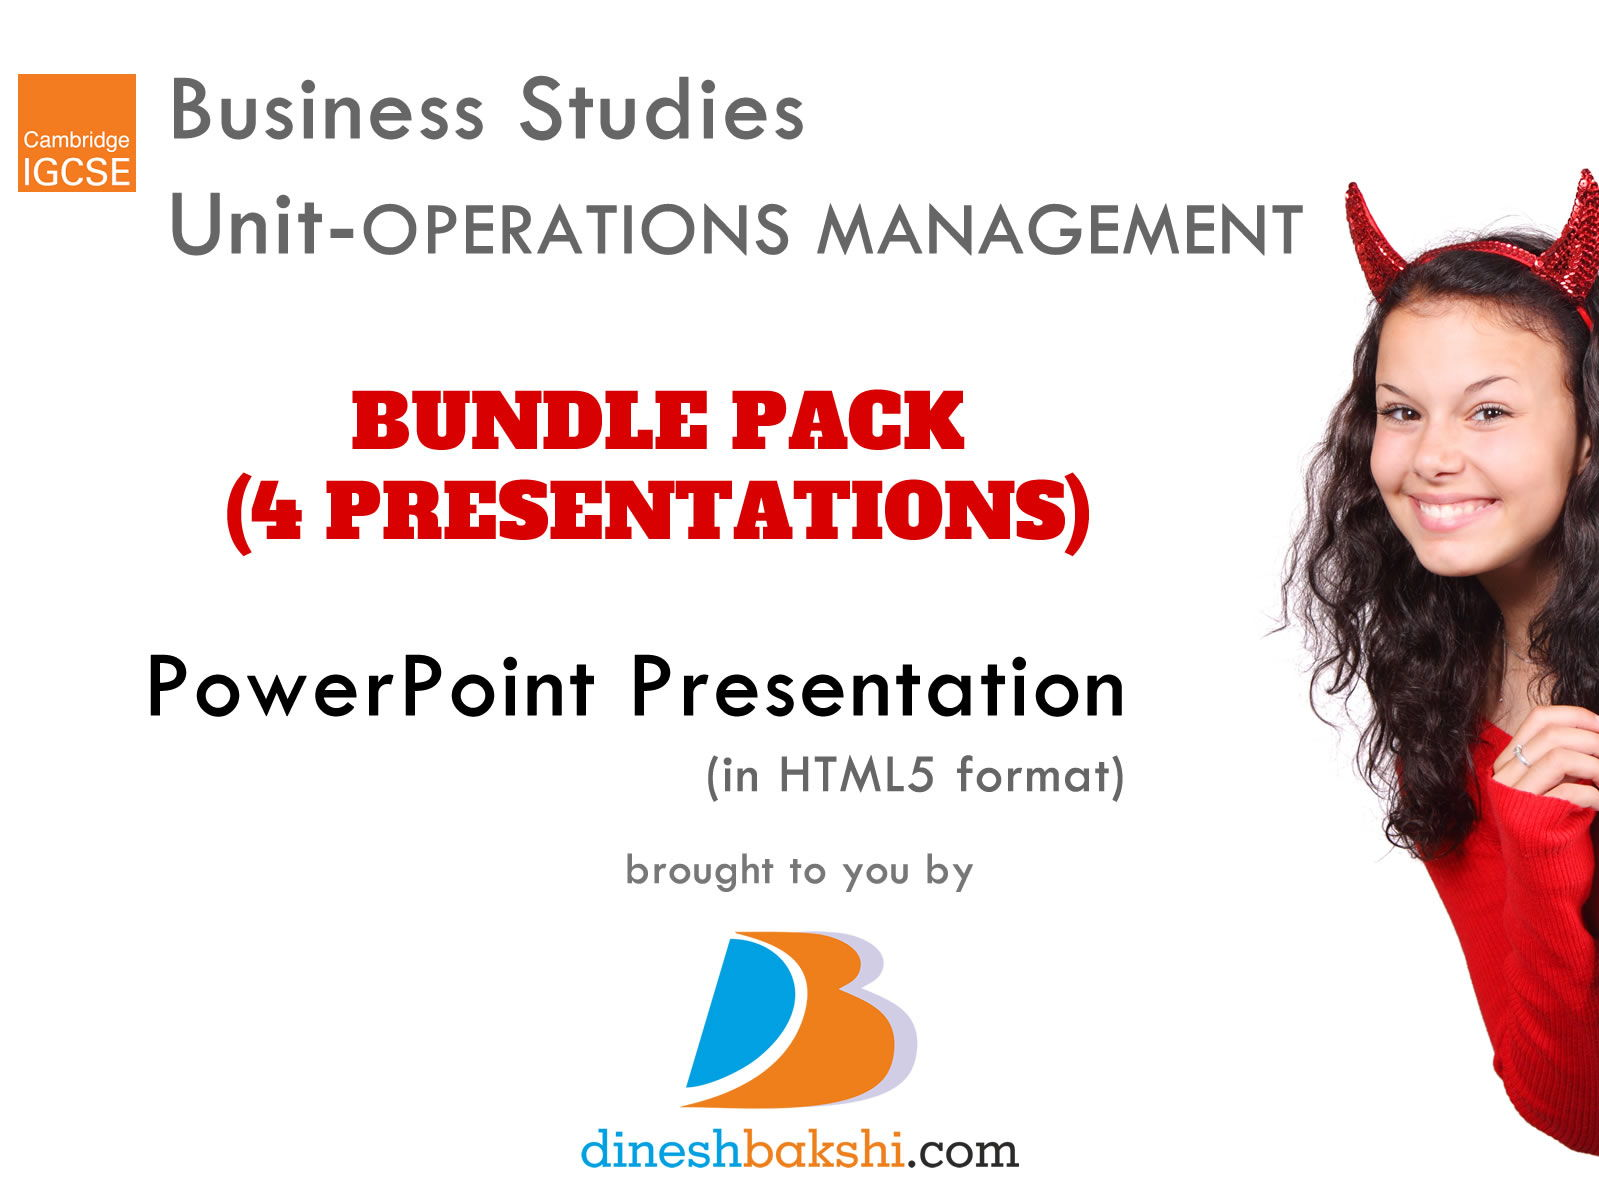 BUNDLE PACK - Operations Management Unit - IGCSE Business Studies